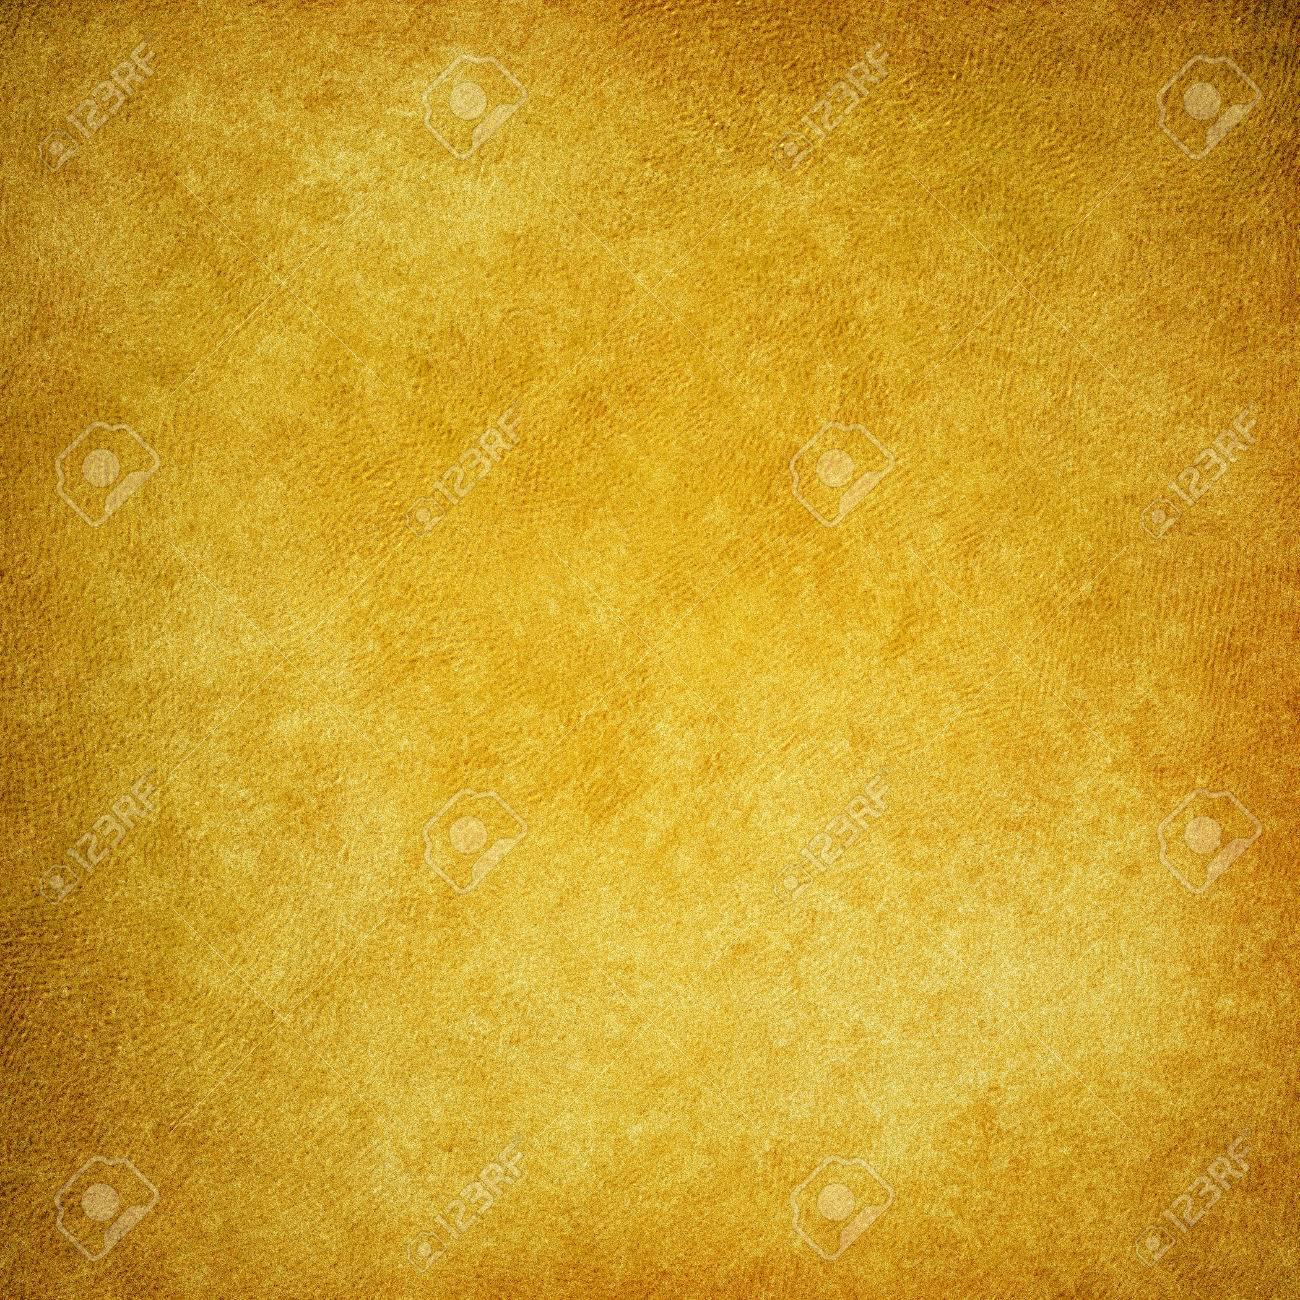 Old Gold Brown Paper Background With Vintage Distressed Texture ...